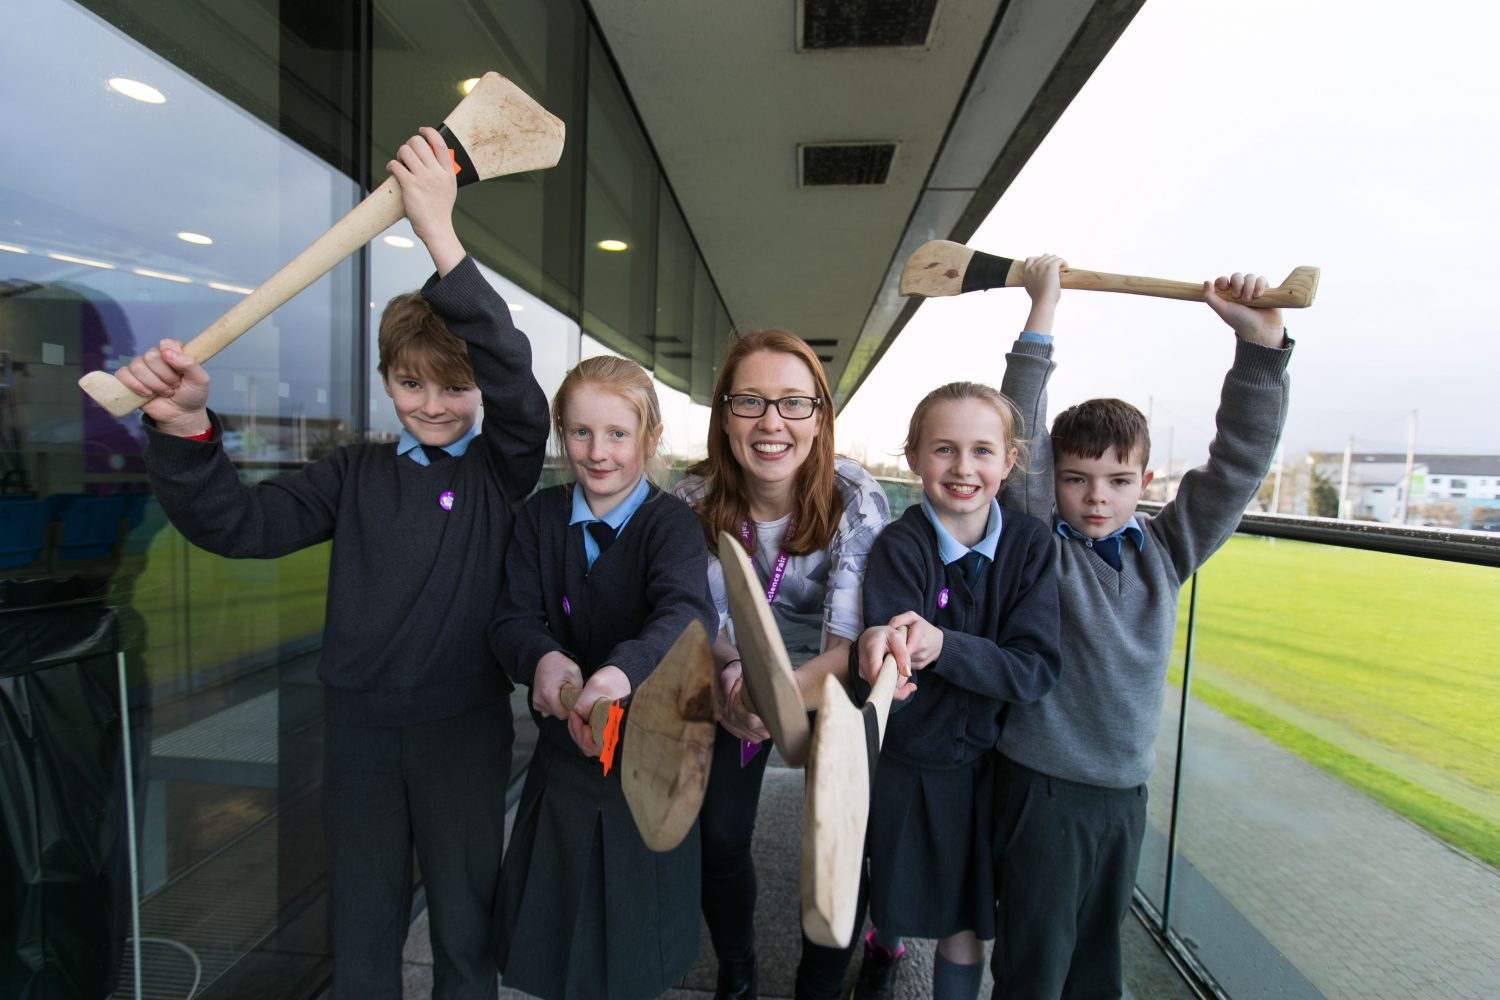 Rena Buckley, All Ireland Cork camogie winner with Adam Gleeson, Aoibhinn O Connor, Caitlynne Ryan McNamara and Fionn Wright from Herberstown NS, Herberstown, Co. Limerick at this years RDS Primary Science Fair Limerick which will see over 3000 primary school students from all over the country exhibit theirSTEM investigations at Mary Immaculate College. Between the three venues of Limerick, Dublin and Belfast there will be over 7000 participants in 2018. Photo: Oisin McHugh True Media